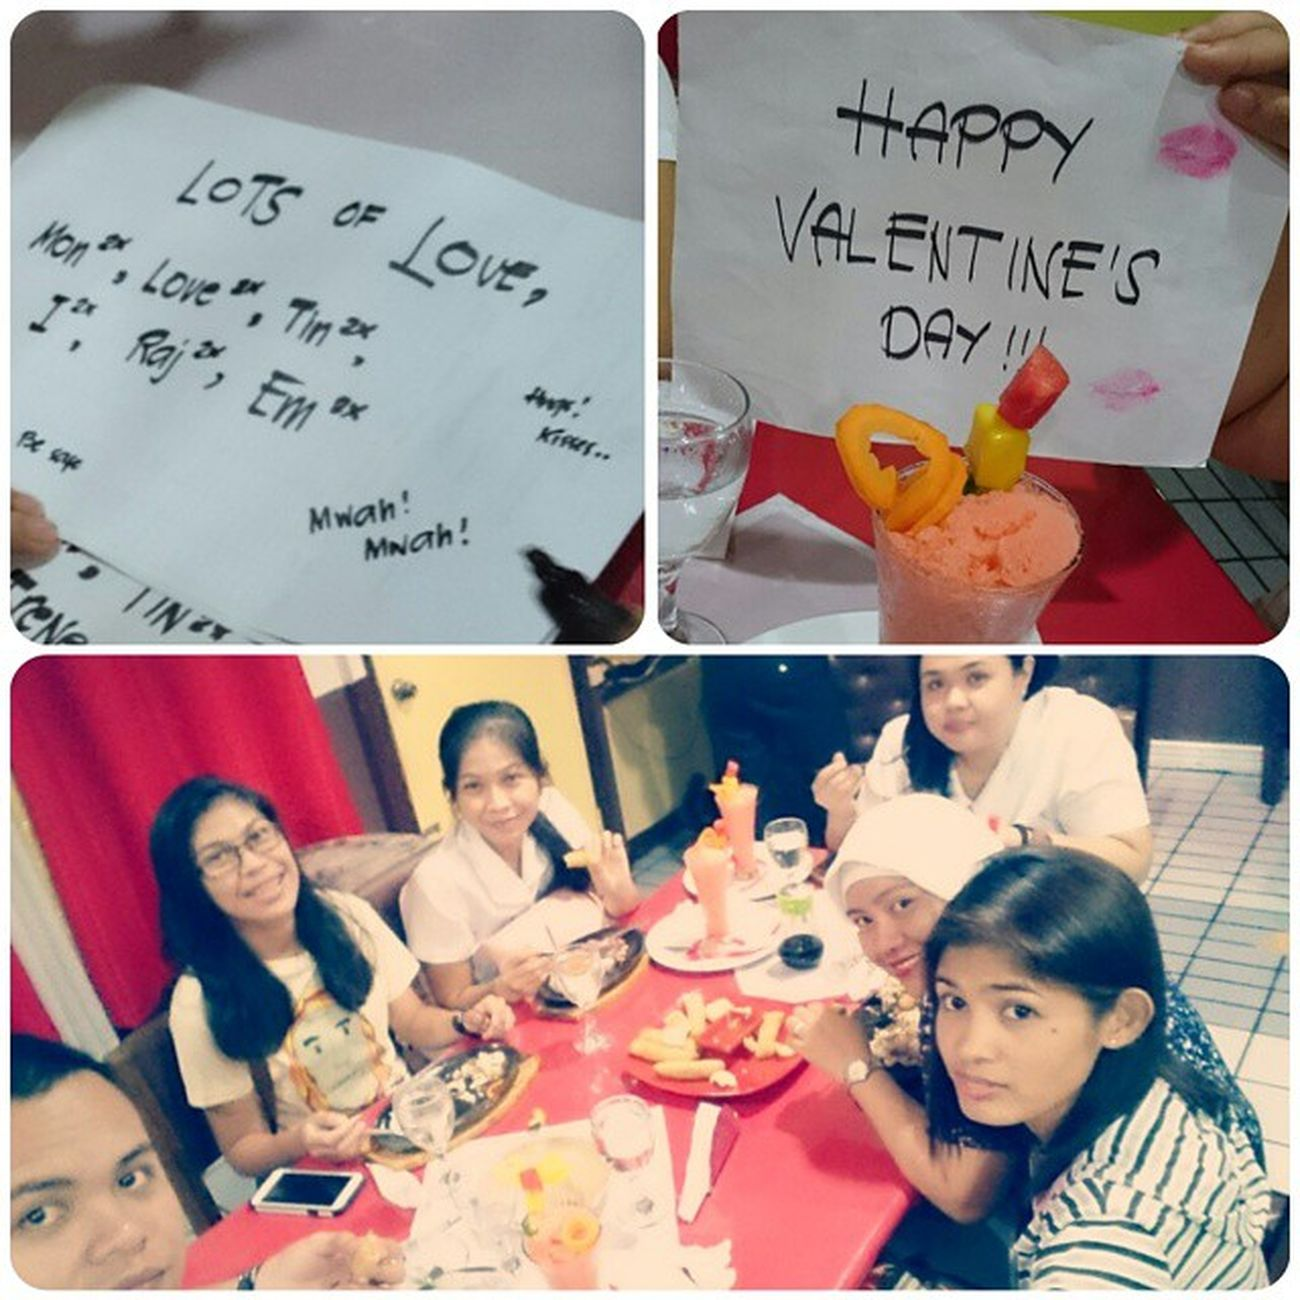 Morning Valentines Date with them. AwesomeDramatic TheMasterRaj TheNiceGeekyKris TheBigBrainLove TheNaughtyVinna Emitthemenace TheMonsterPoororot